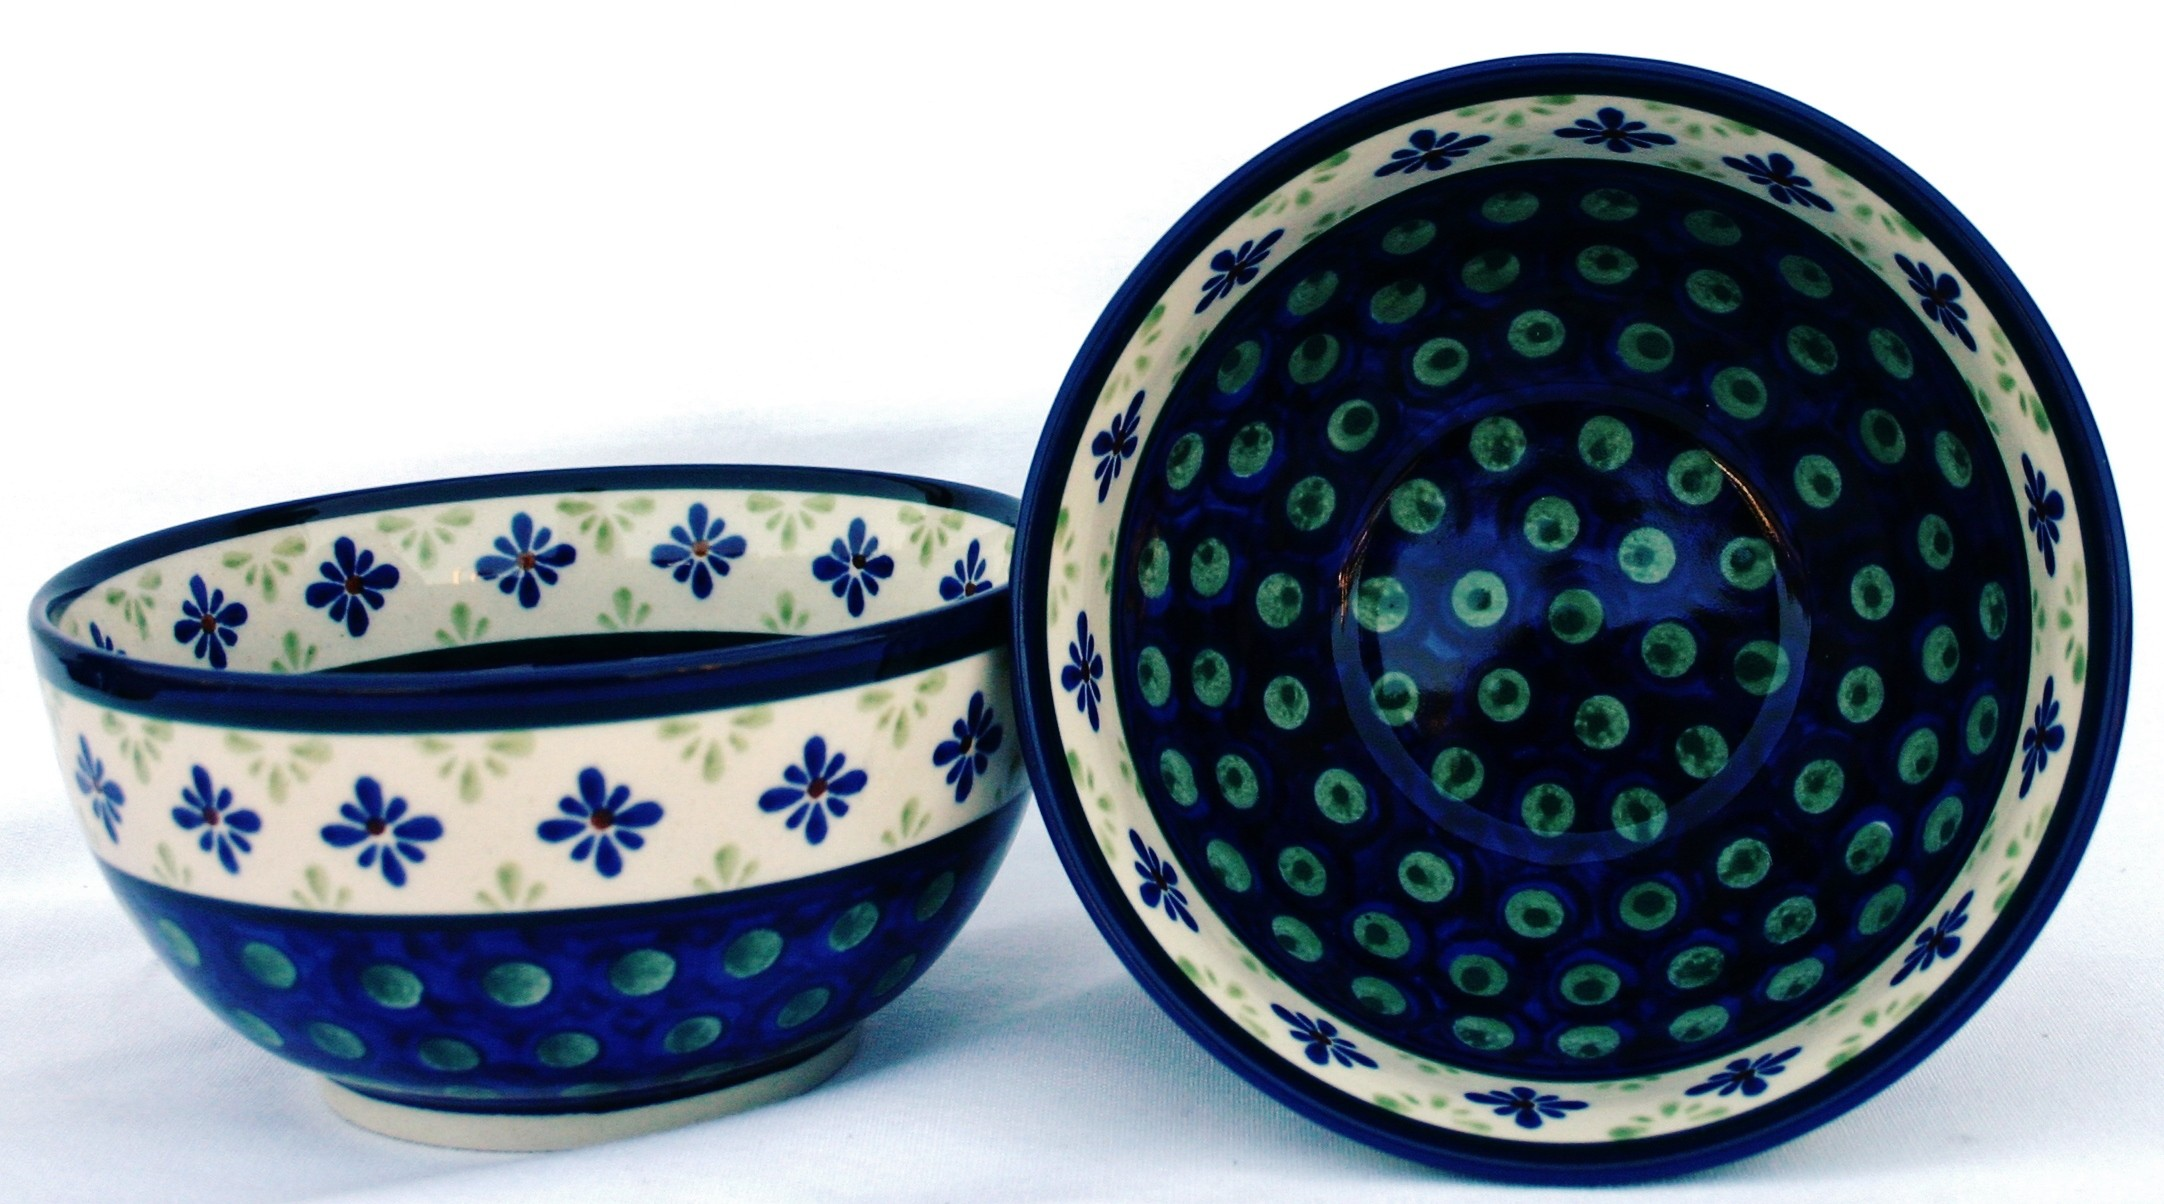 Polish Pottery 2 cup FLURRY OF JOY Stoneware Cereal Bowls | CLASSIC